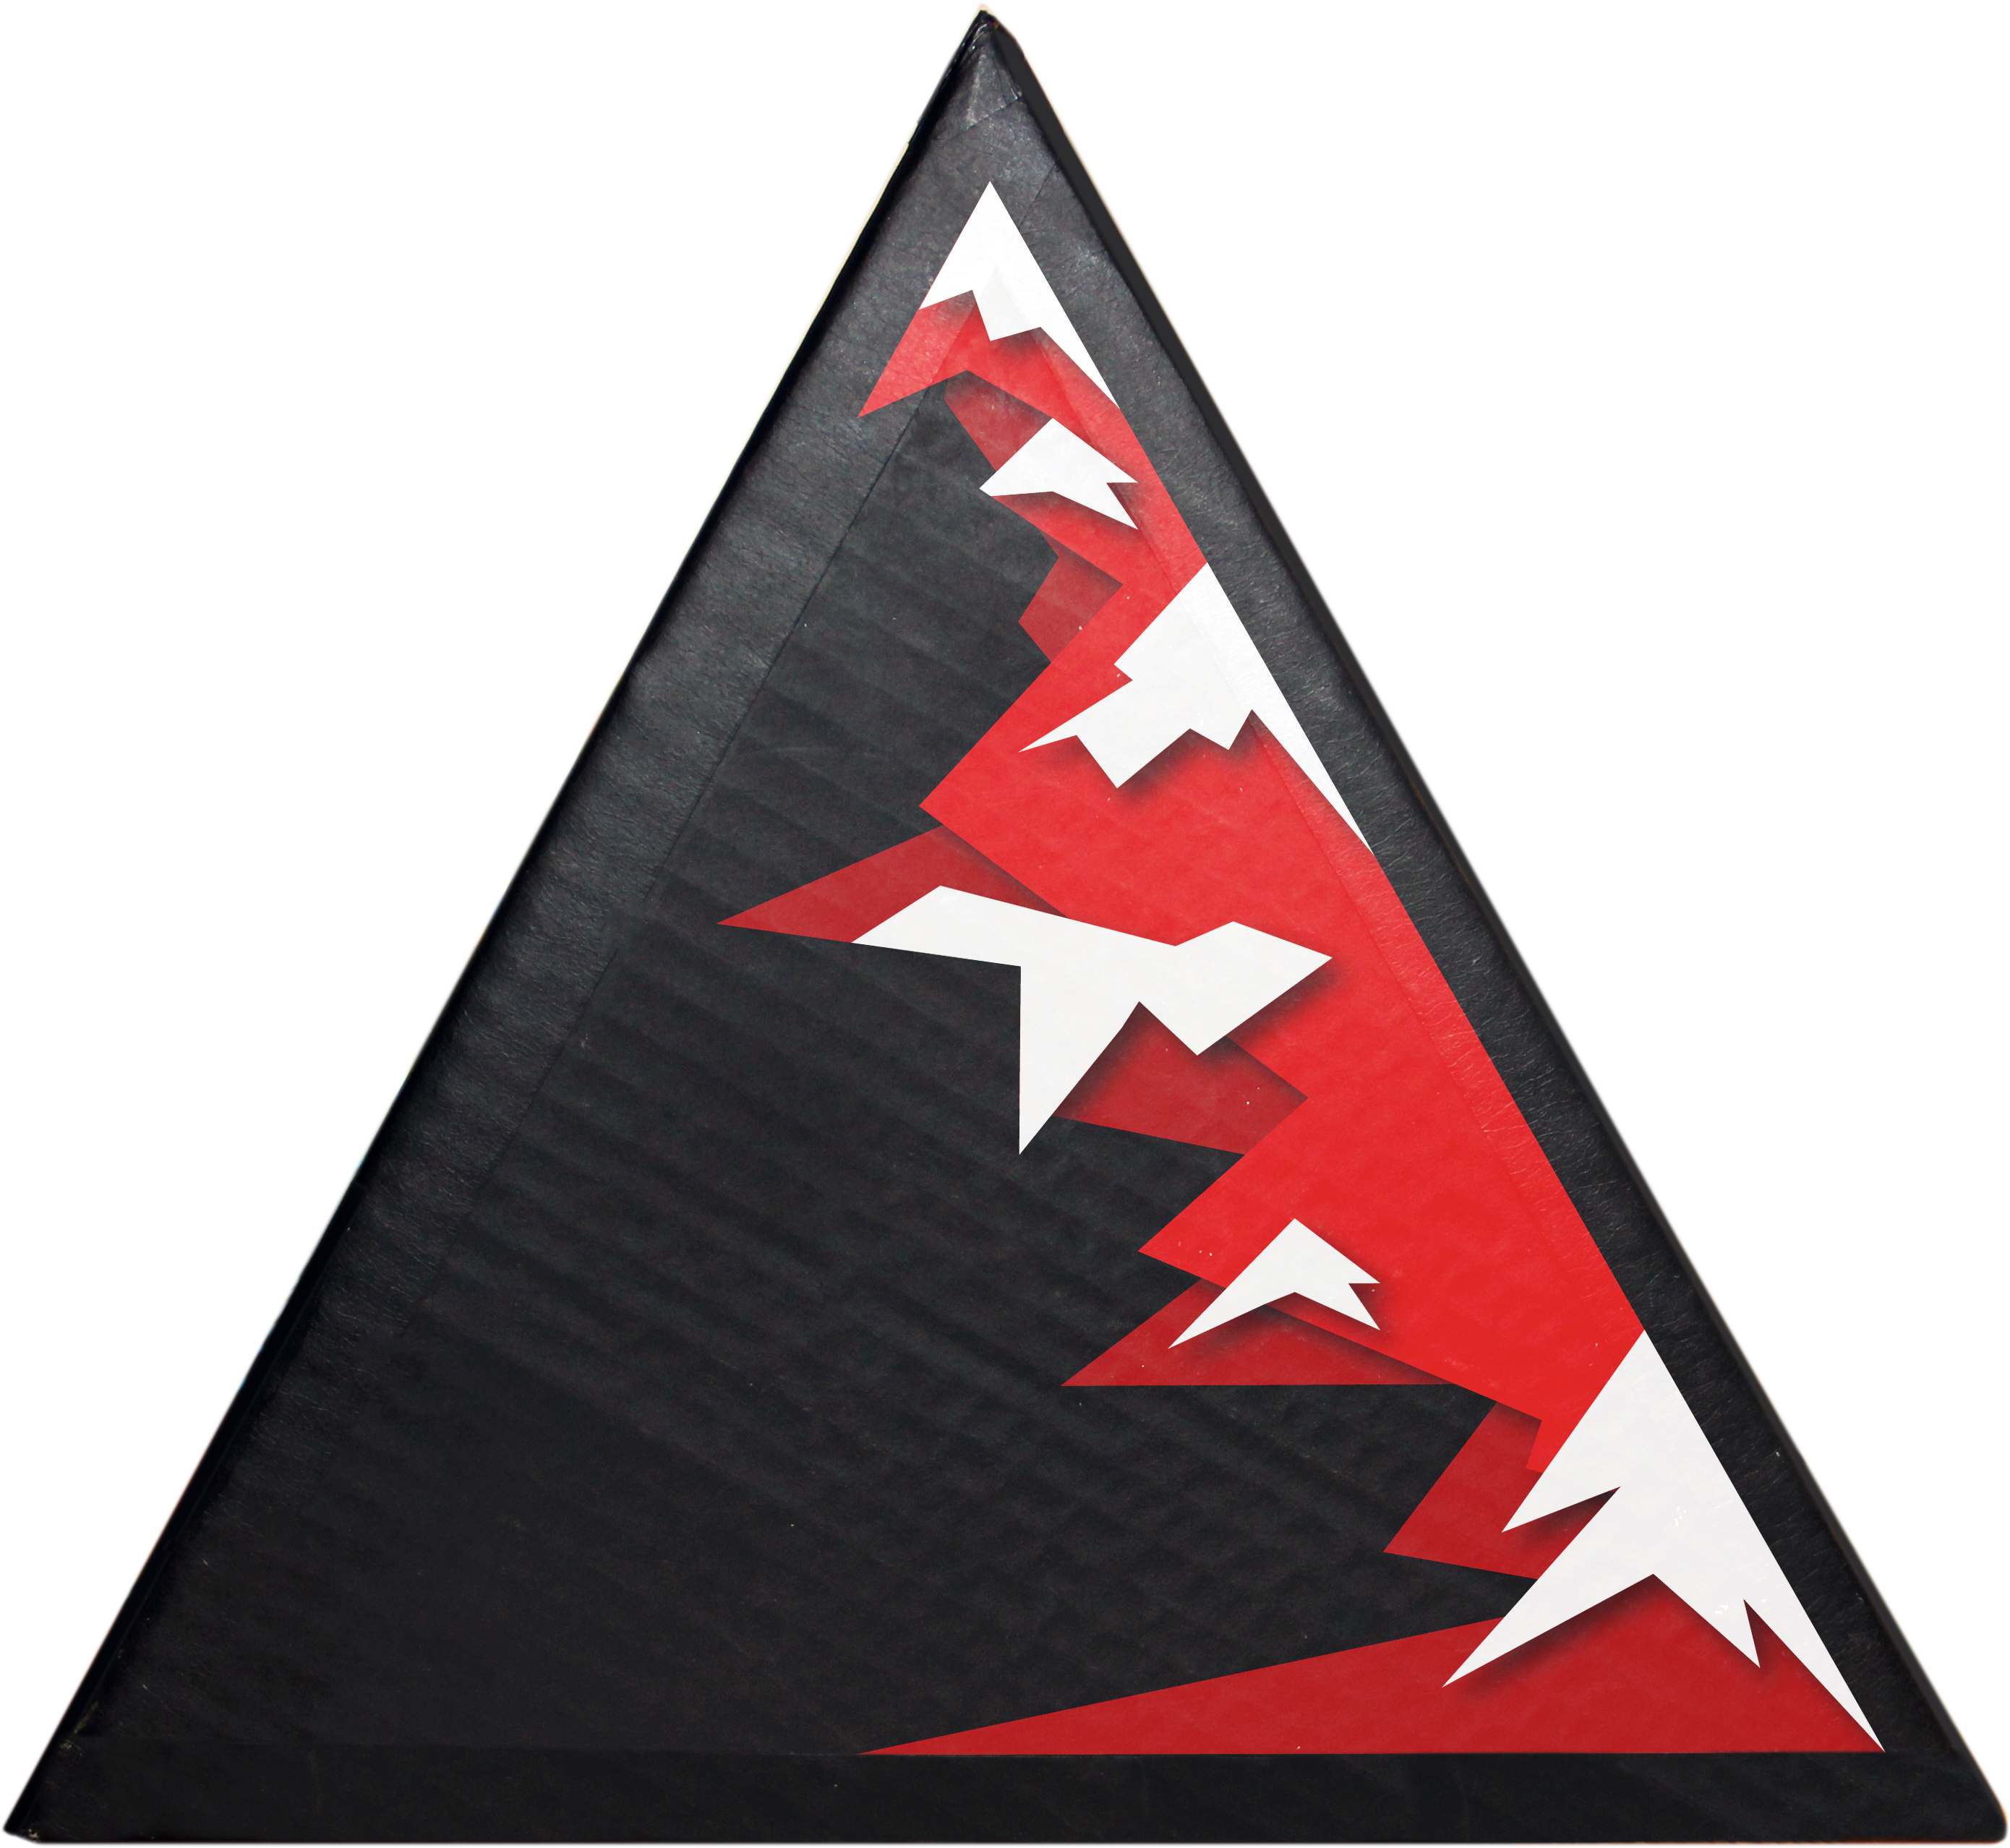 Triangle design png. Best shape designs